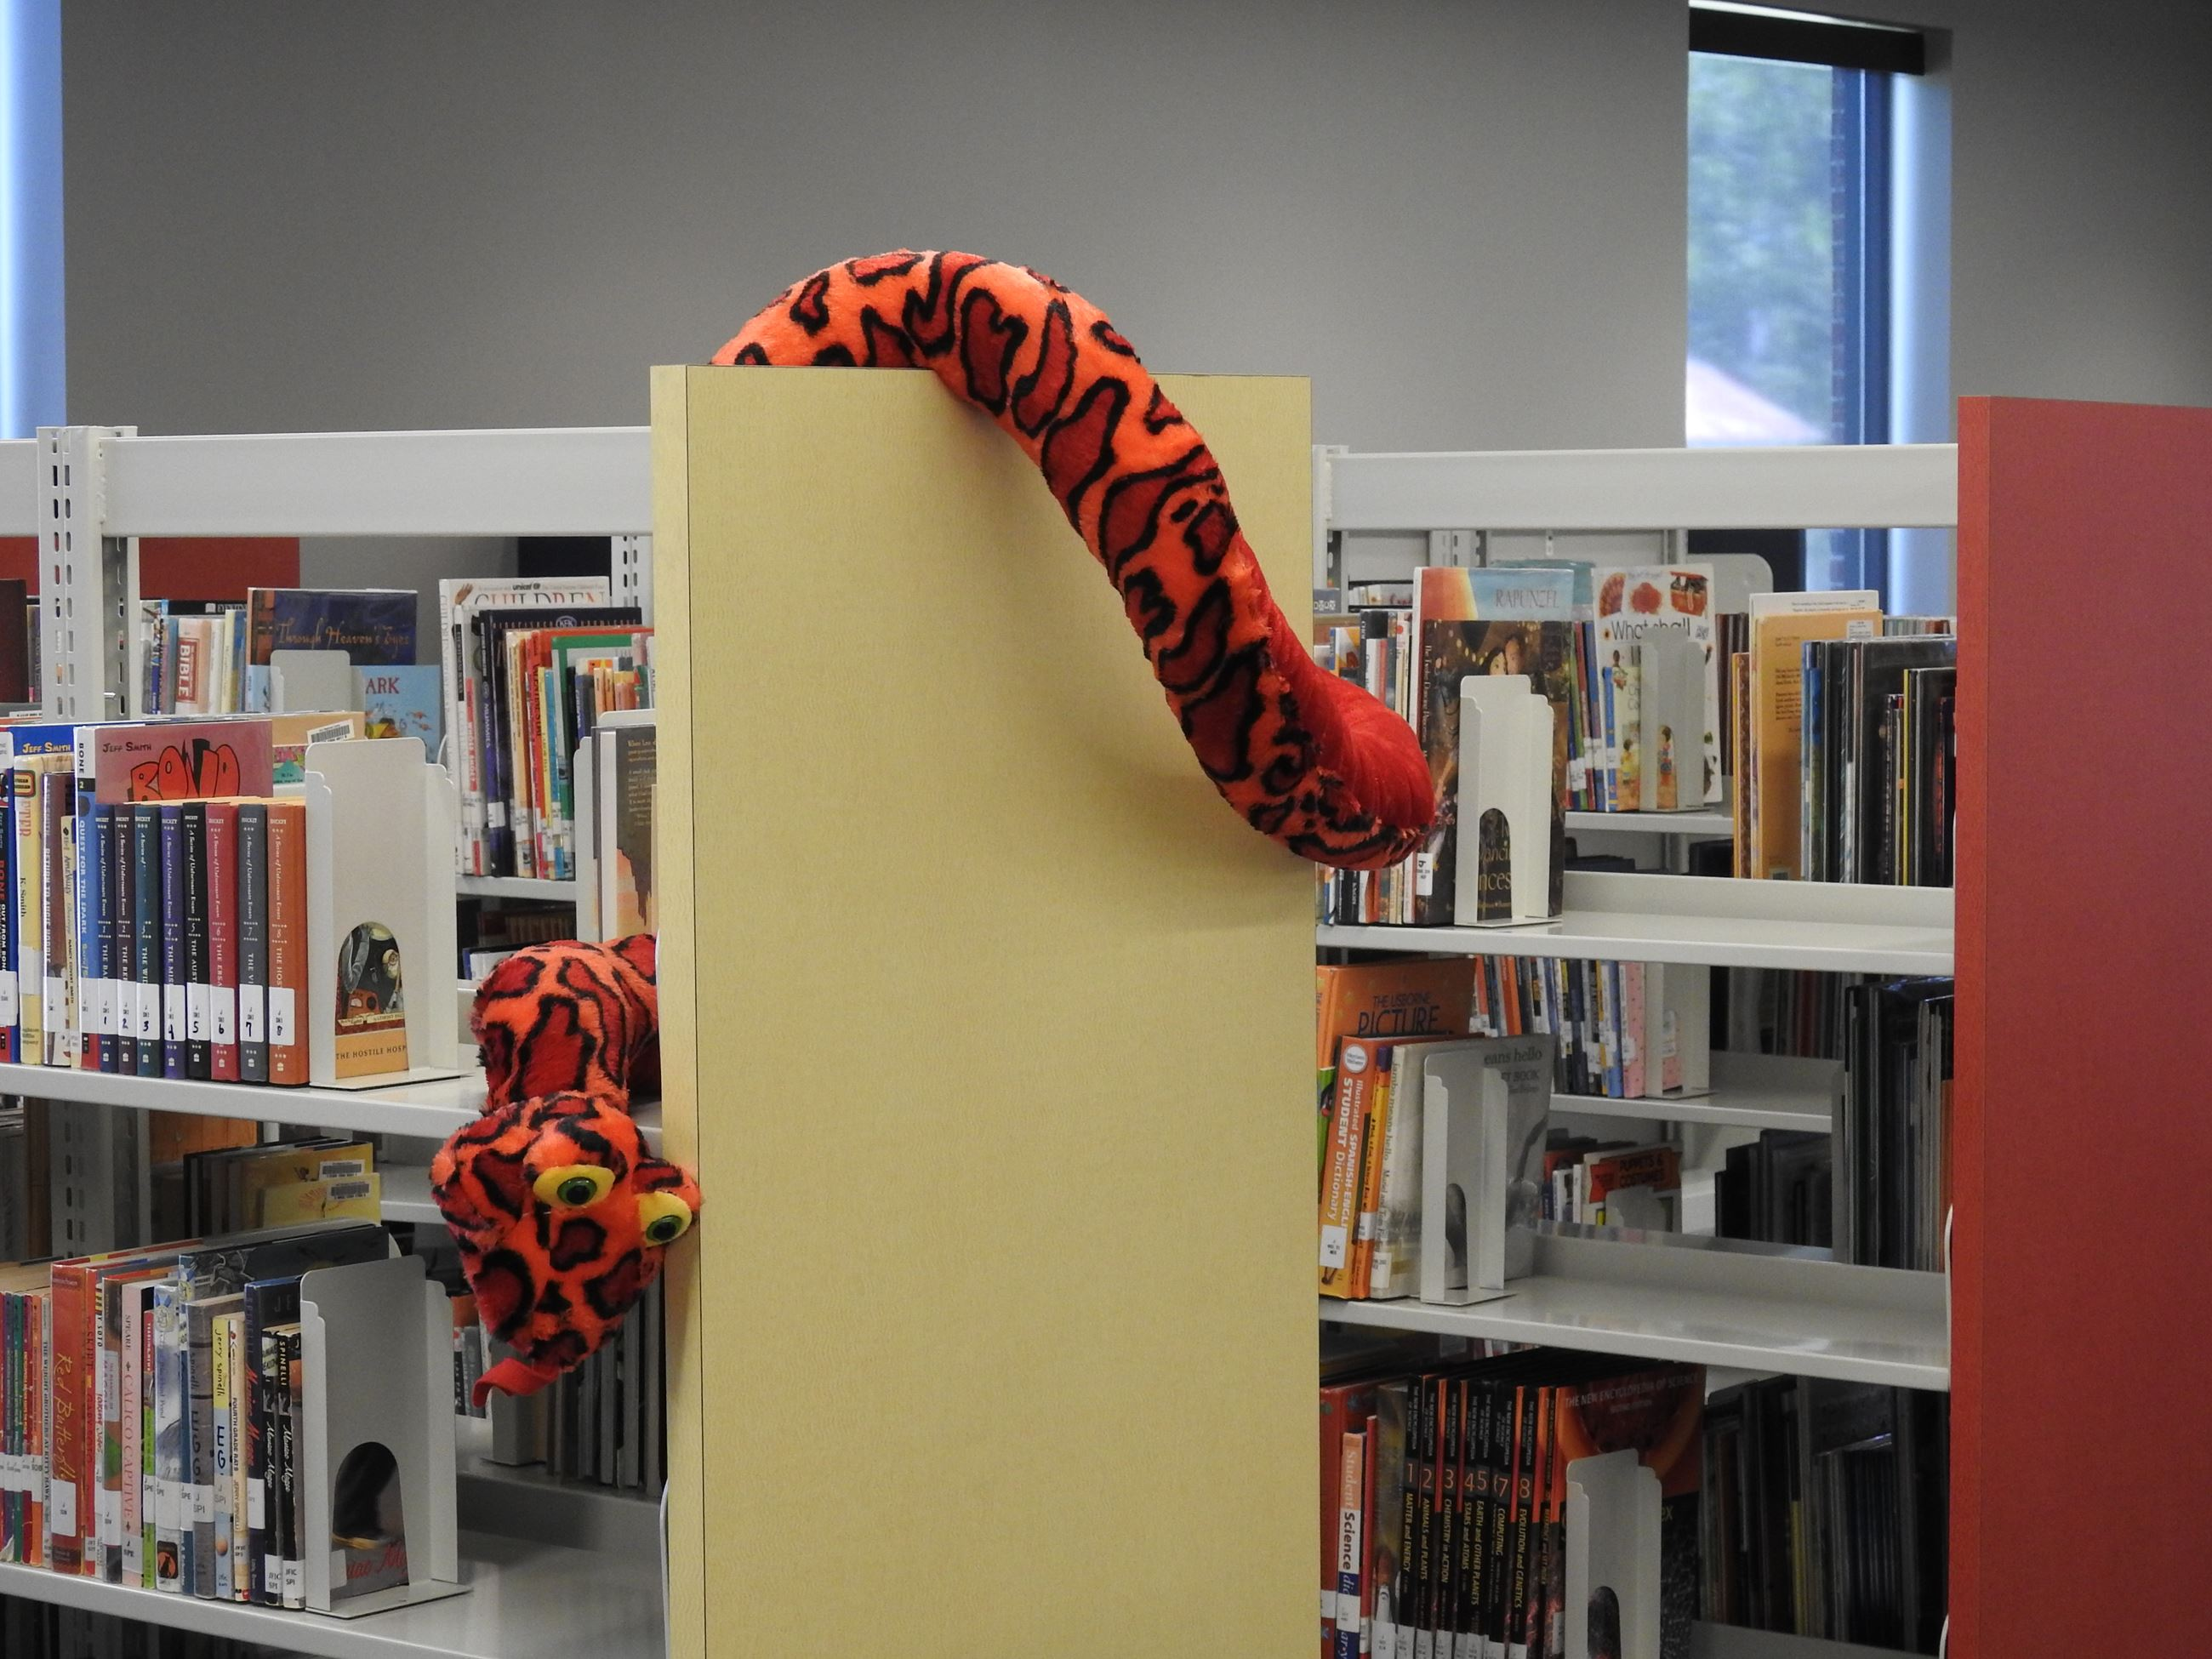 Bookshelf with stuffed animal hanging from the end